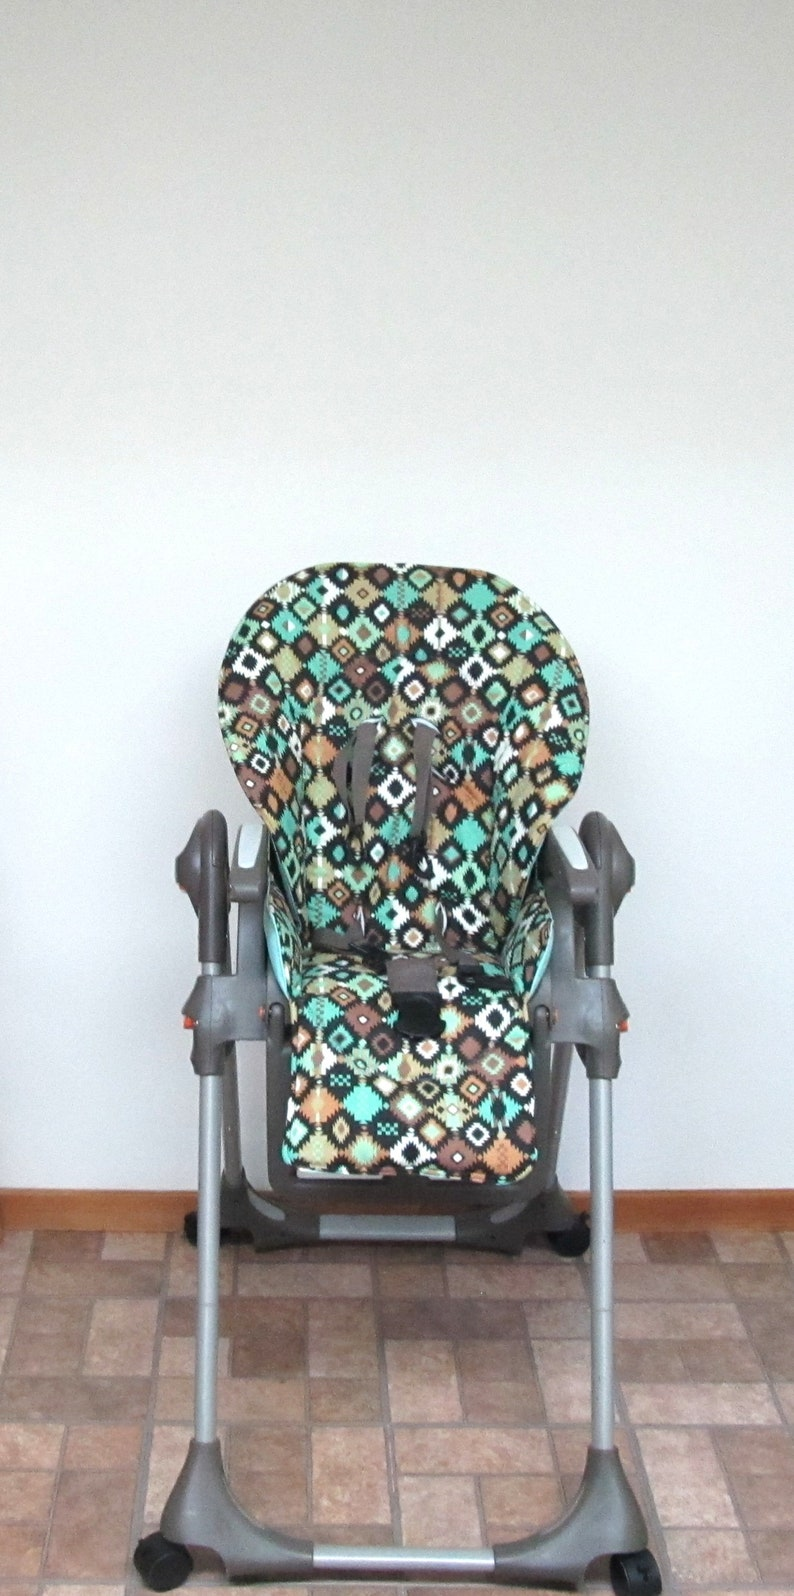 Peachy Replacement High Chair Cover Southwest Print Fits The Chicco Style Pdpeps Interior Chair Design Pdpepsorg